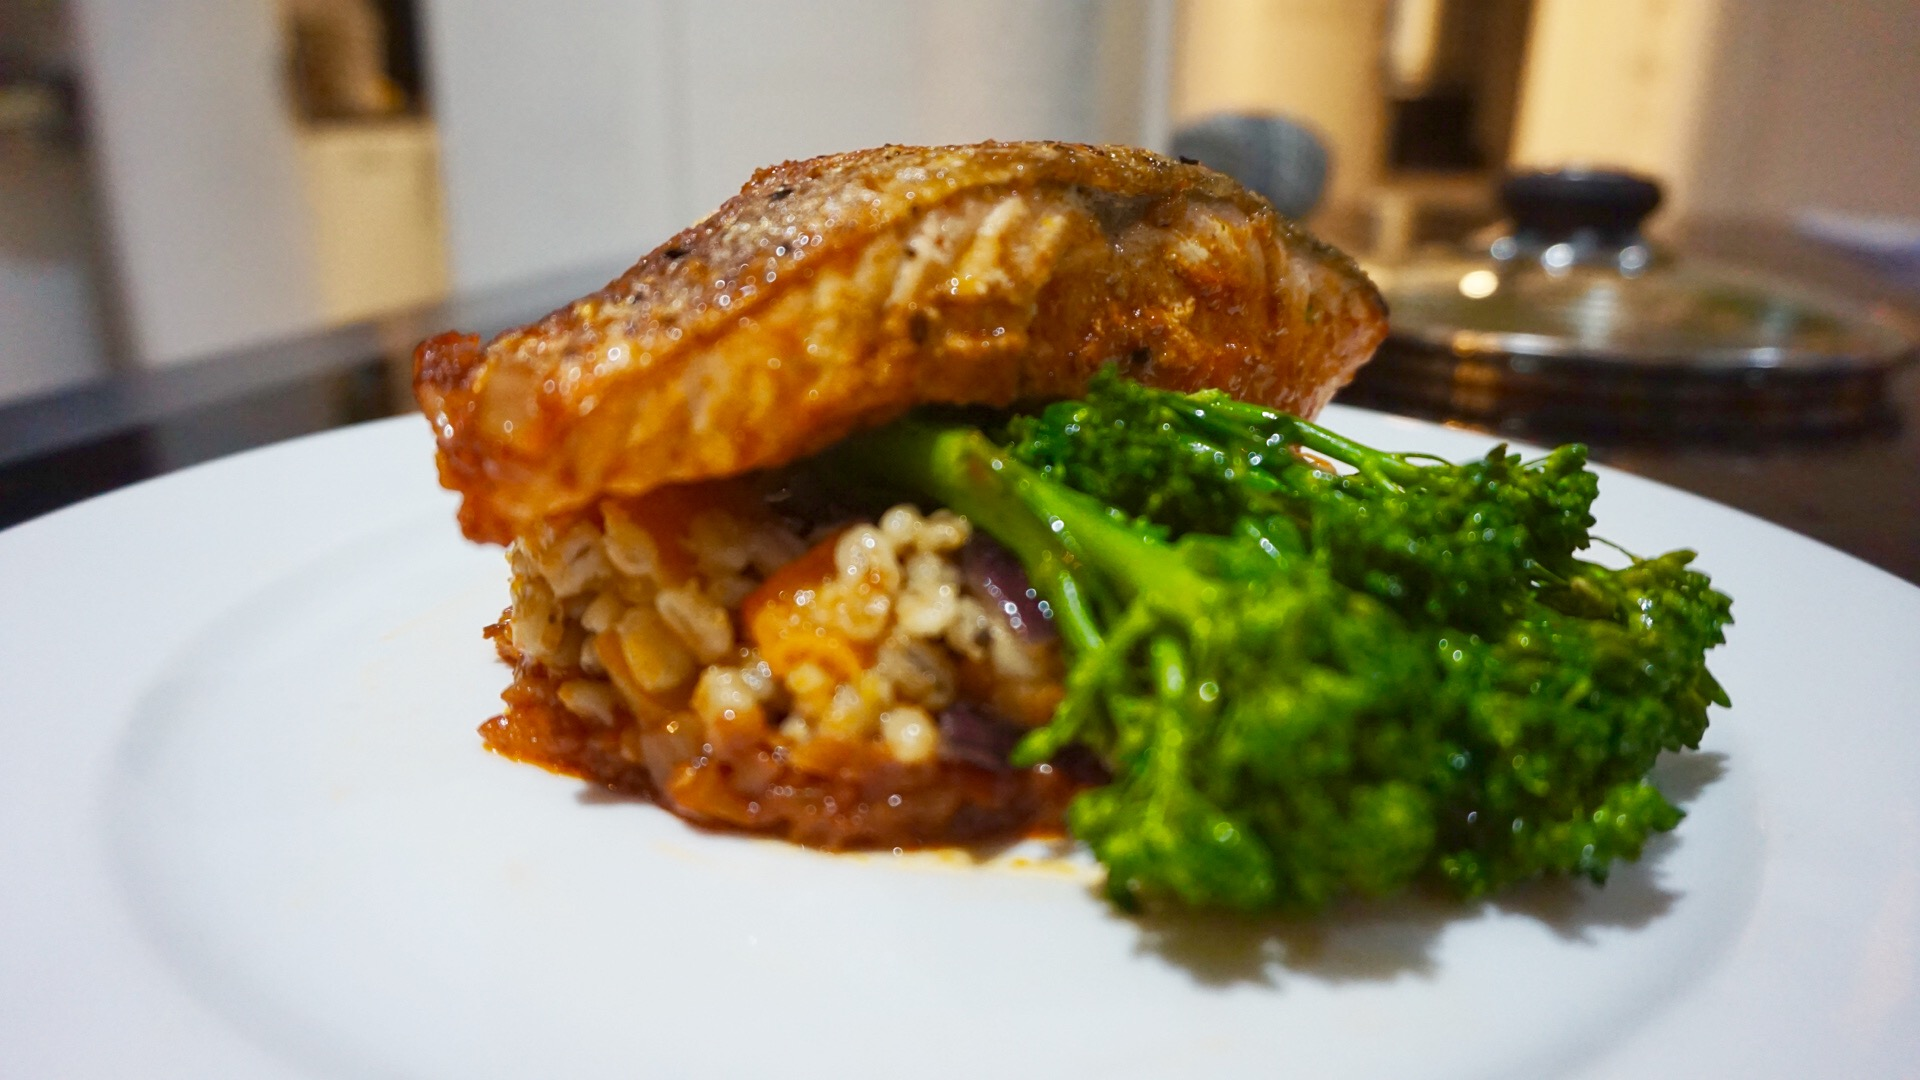 Salmon Steak on a bed of Pearl Barley Greens and Roasted Butternut Squash